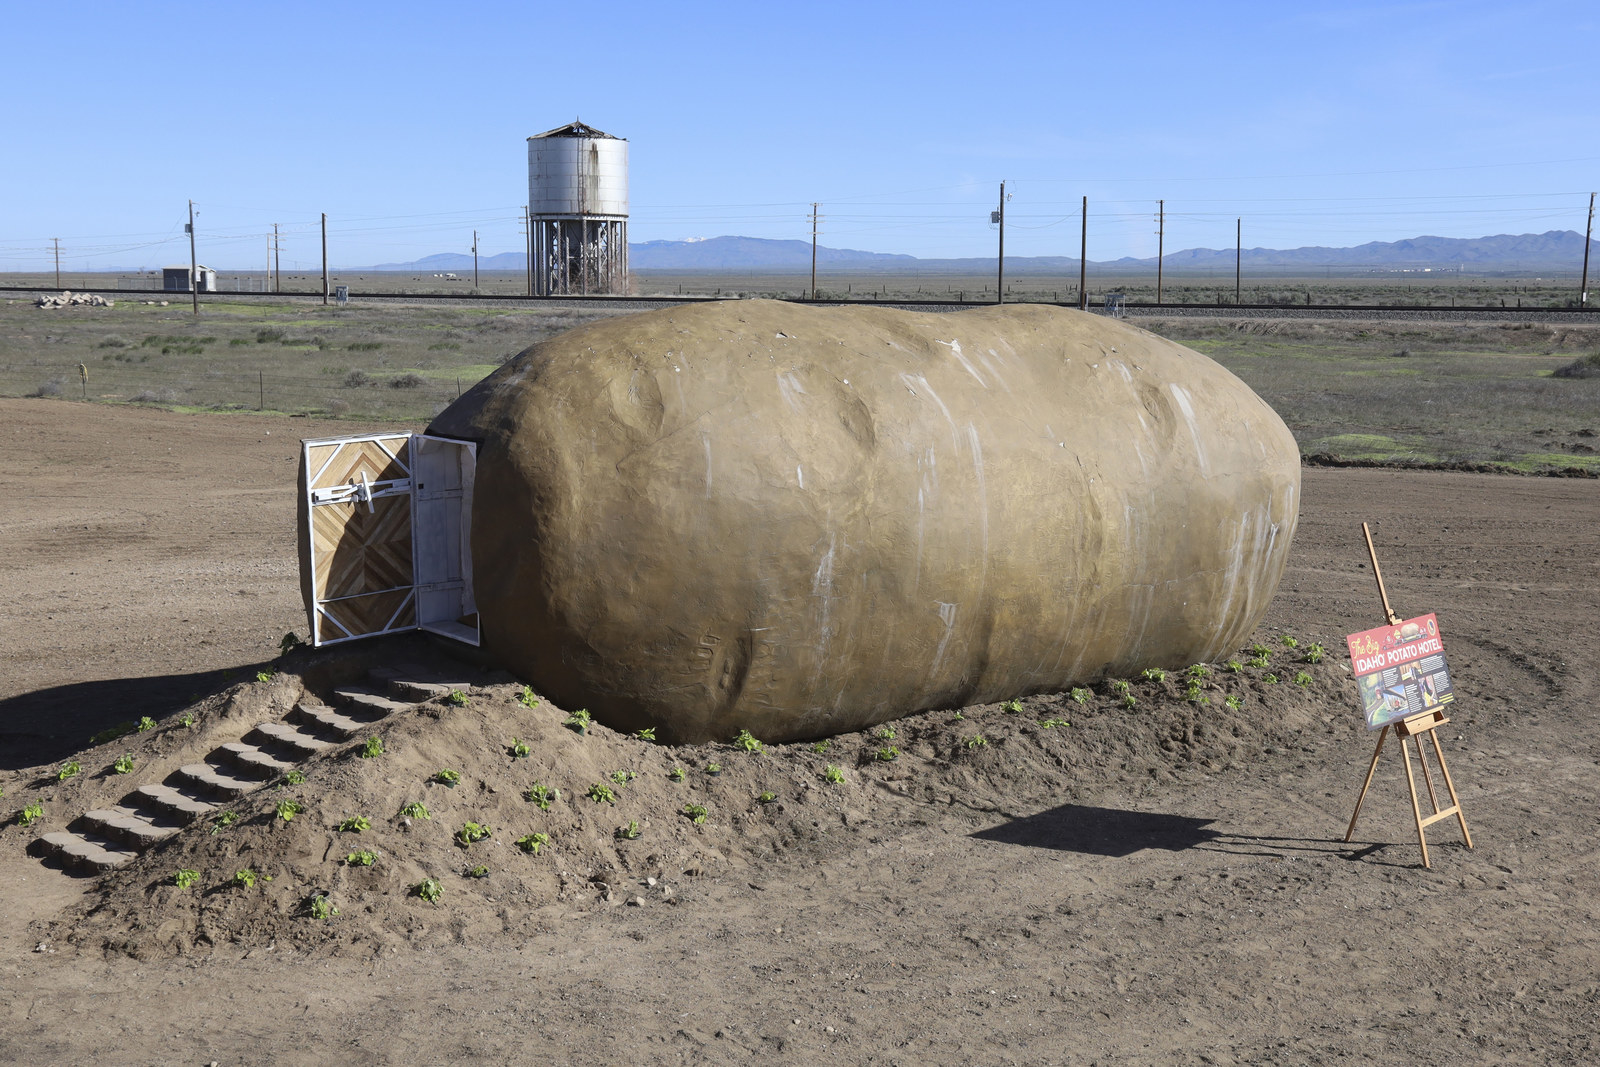 So There's A Giant Potato House On Airbnb And I Kind Of Want To Stay In It